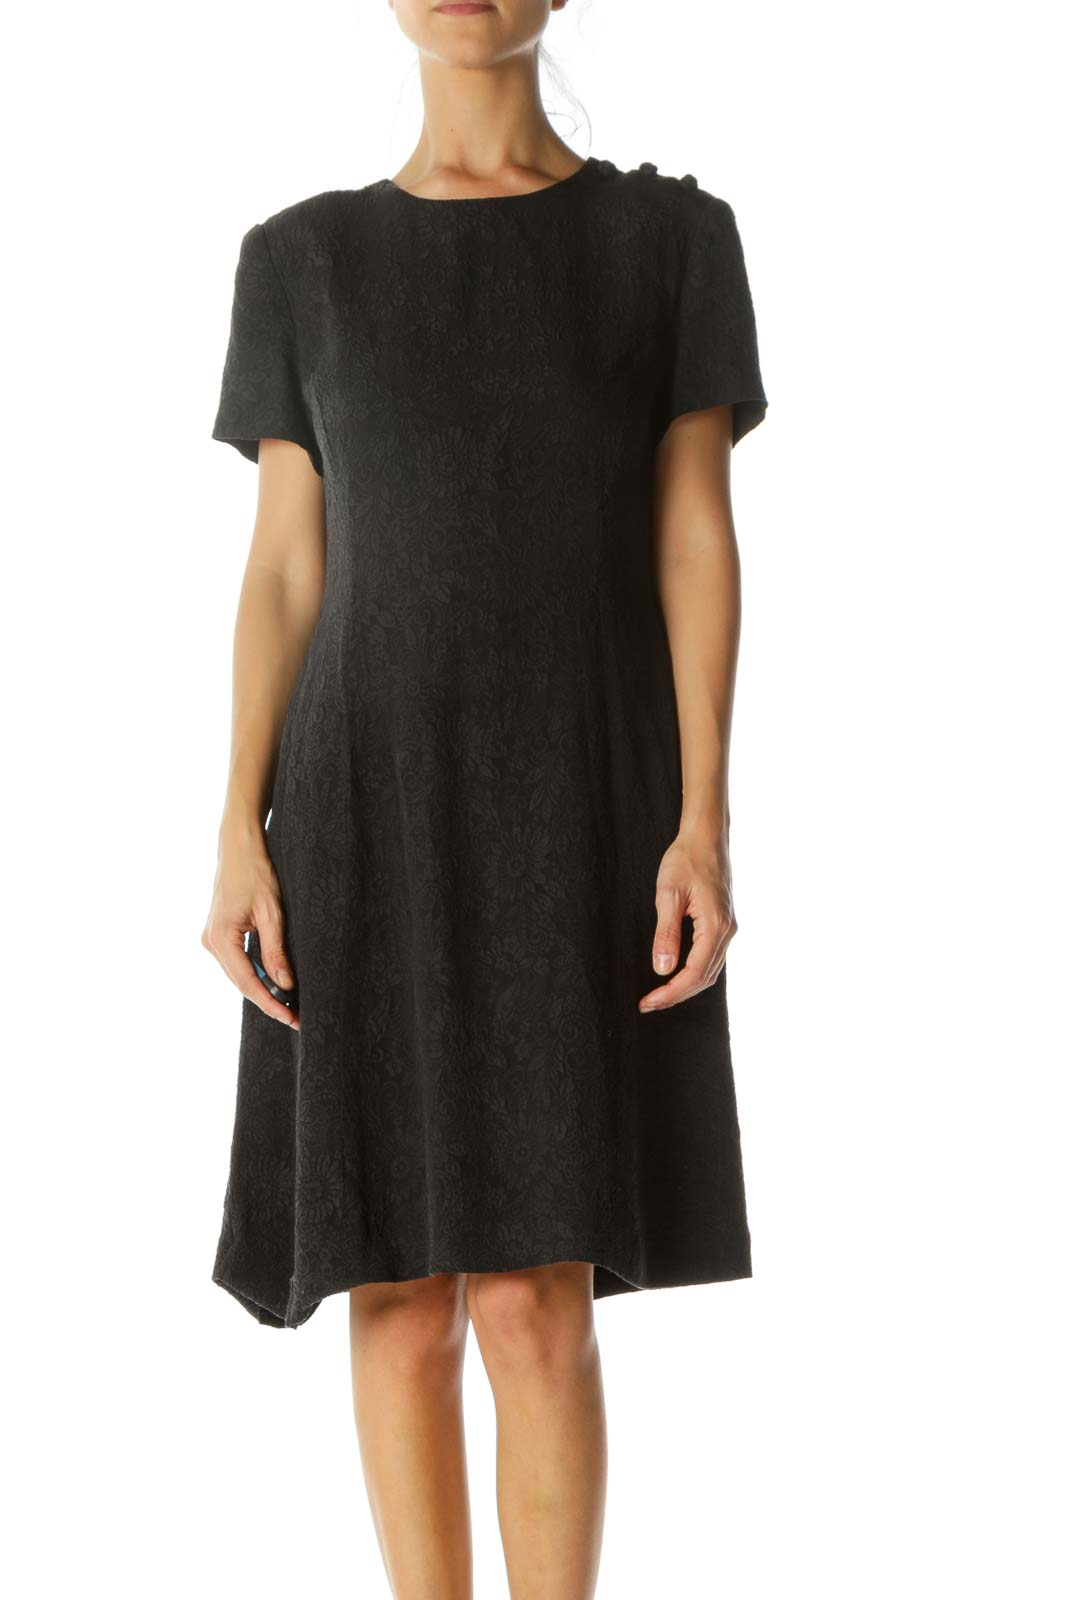 Black Silk Floral Jacquard Round Neck Fabric Buttons Detail Padded Shoulders Dress